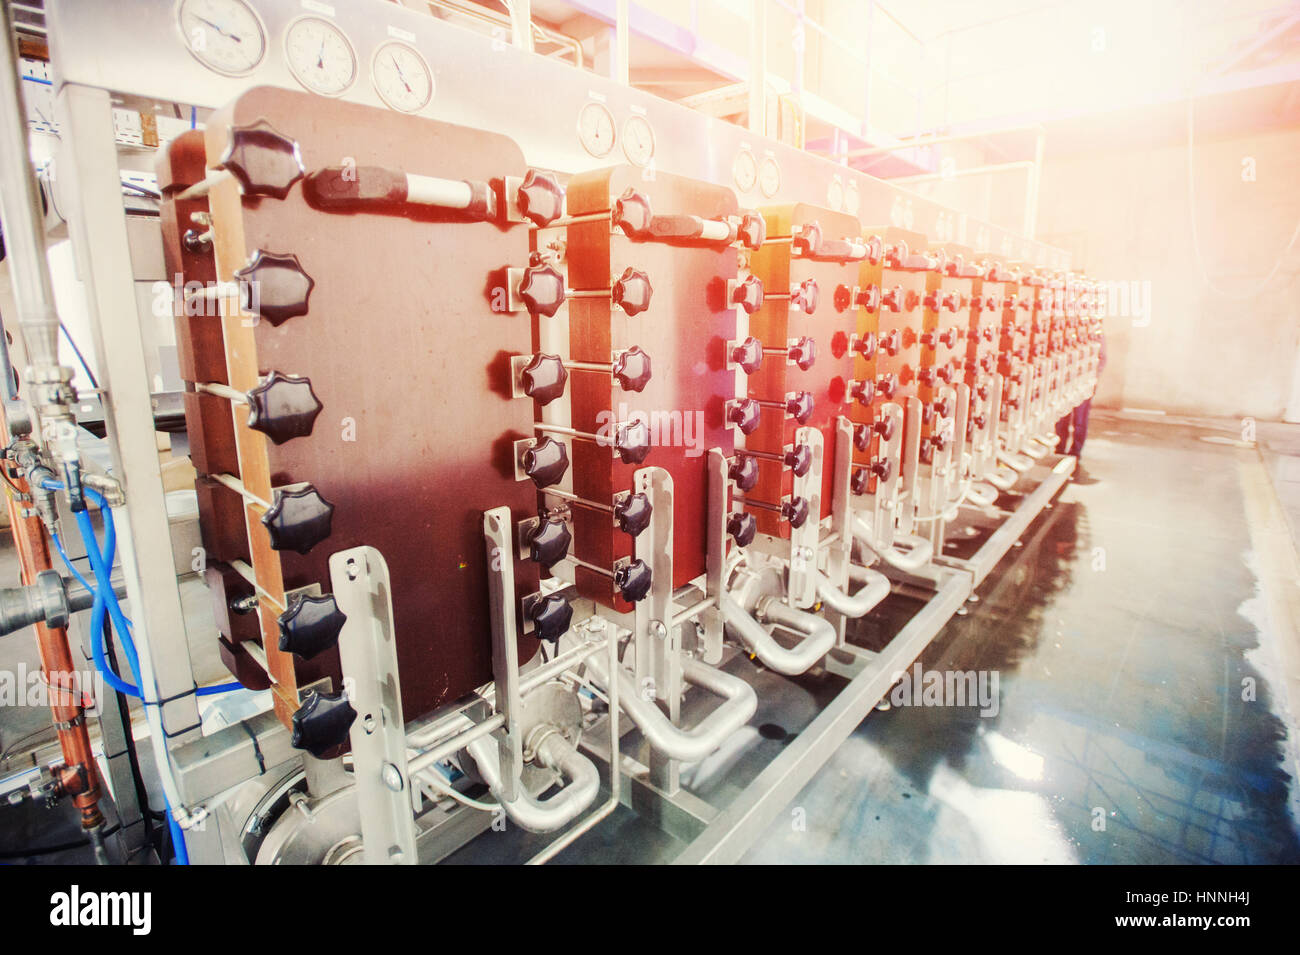 Equipment of the technology for making starch, cleaning and proc - Stock Image